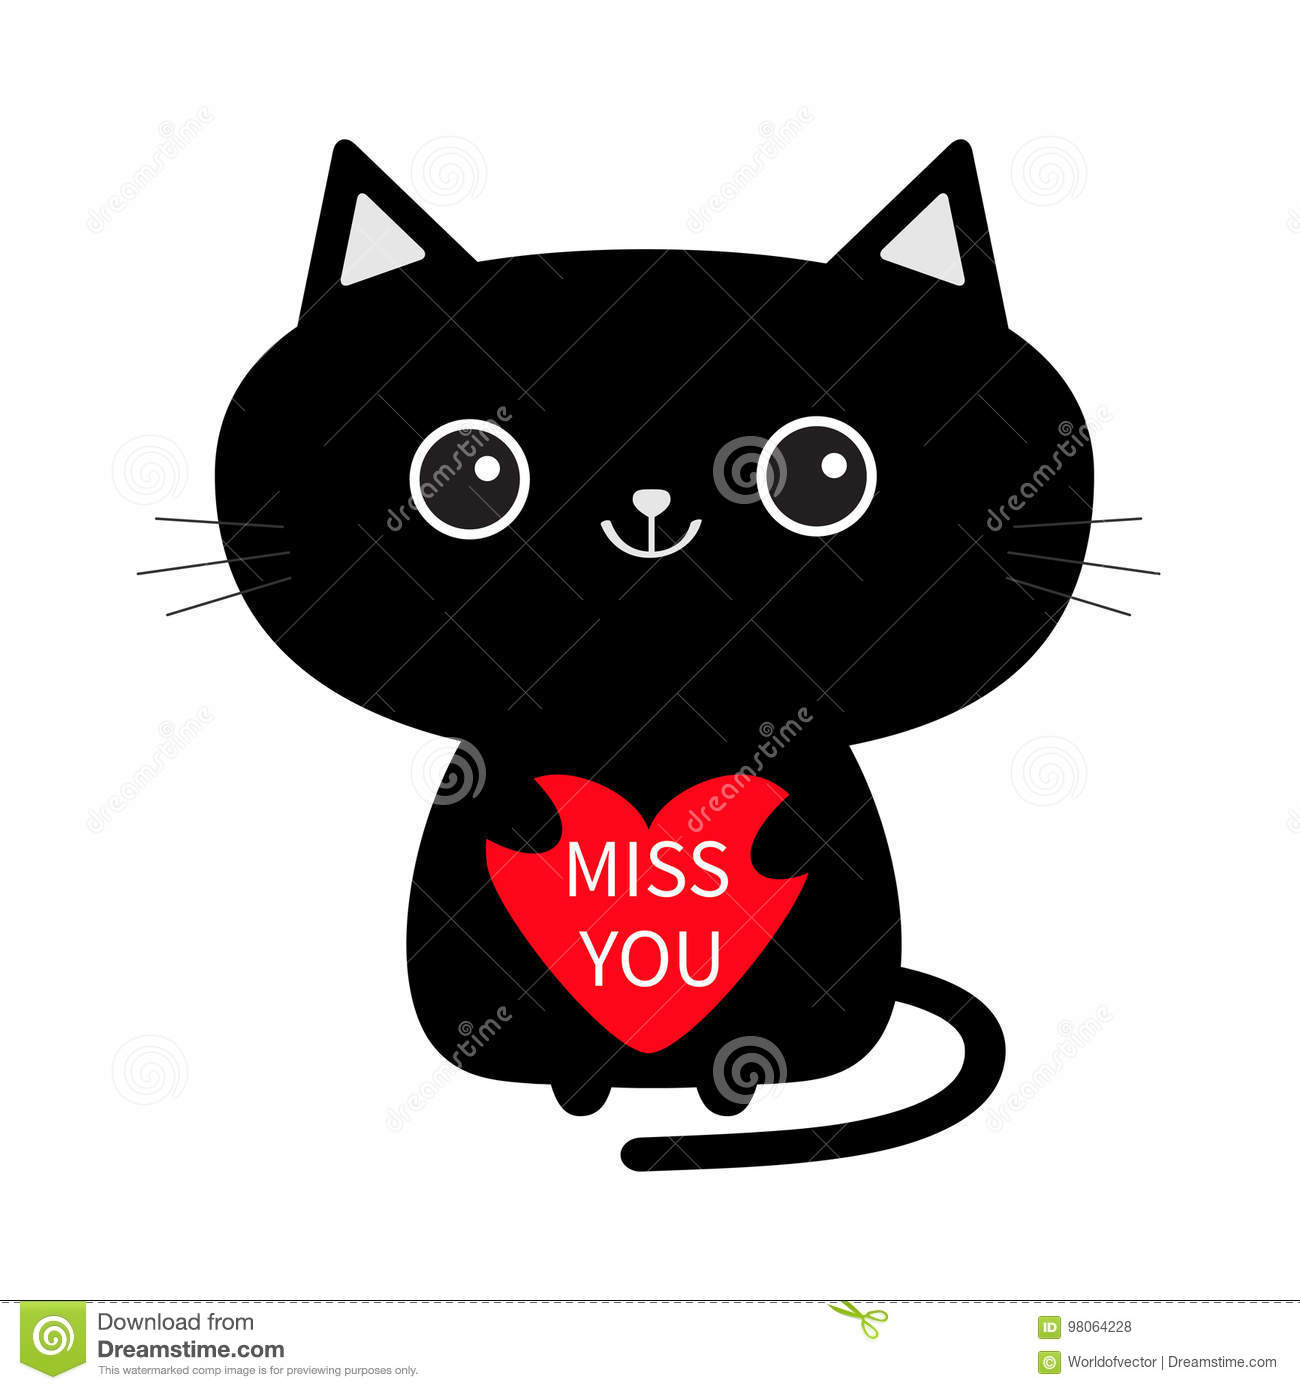 Cute Black Cat Icon Holding Red Heart Miss You Funny Cartoon